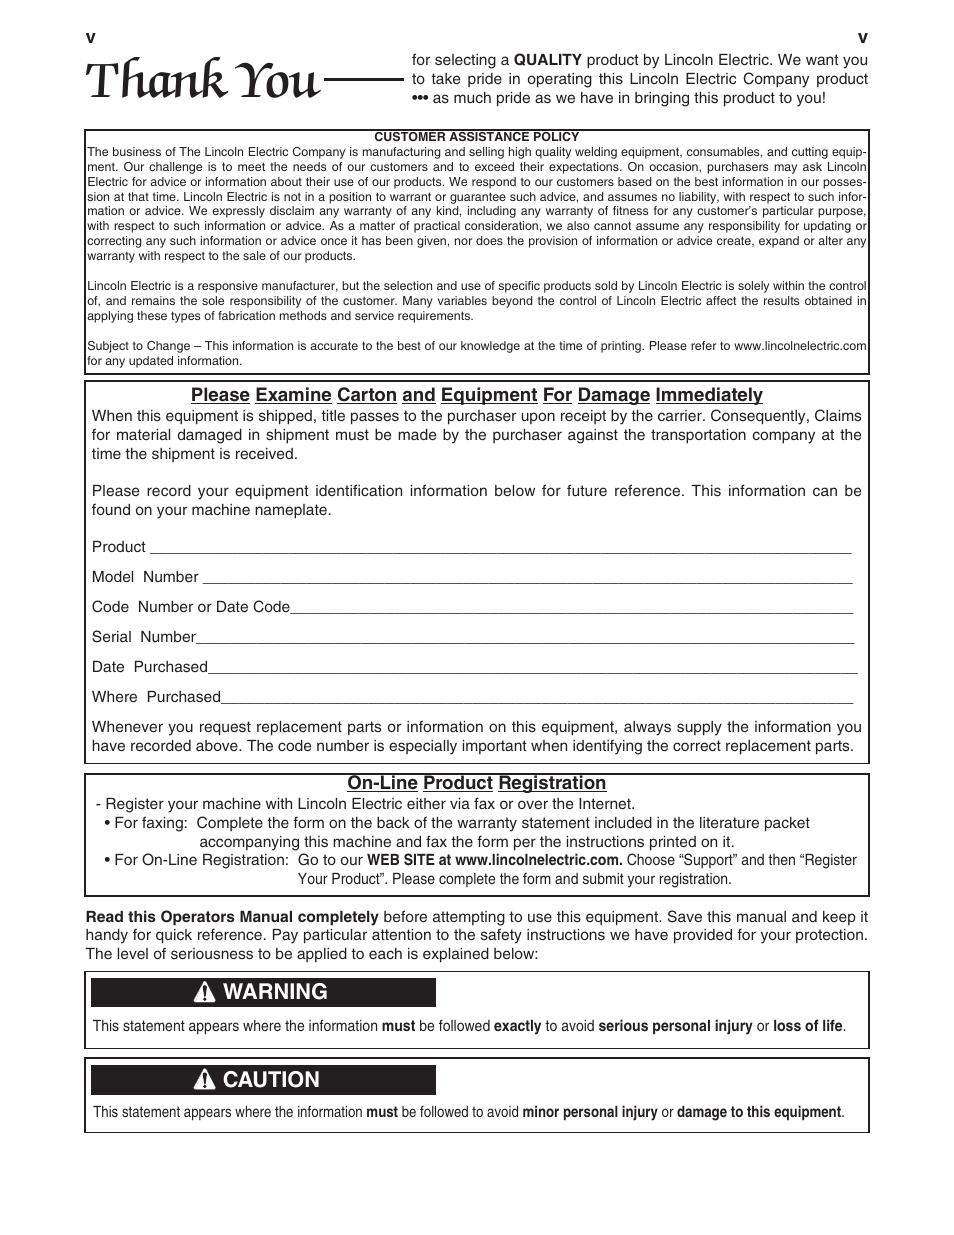 Warning, Caution | Lincoln Electric IM420 IDEALARC DC-1000 User Manual |  Page 6